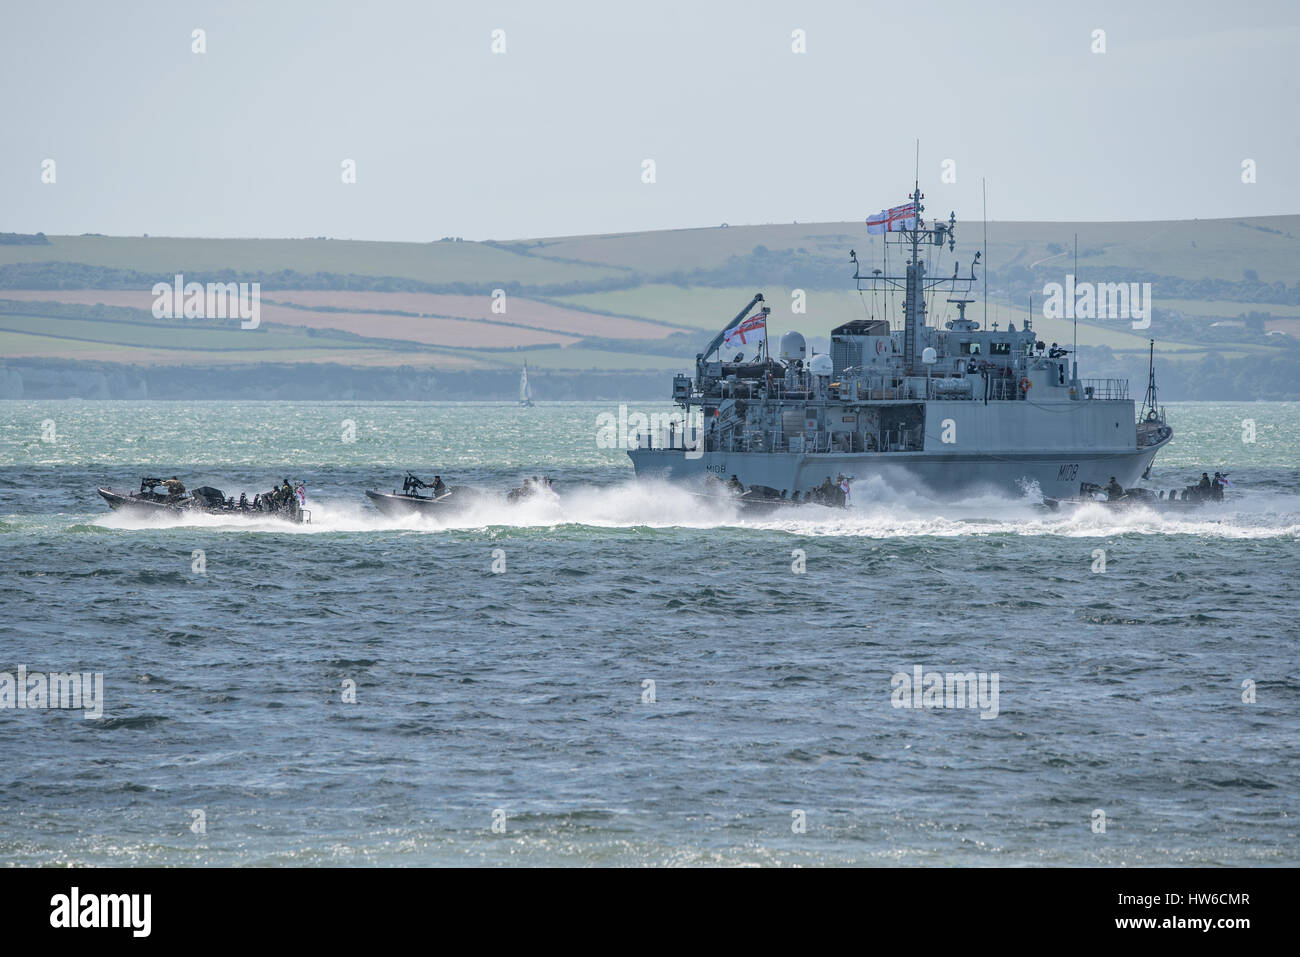 Royal Marines and the Royal Navy mine warfare ship HMS Grimsby in a role demo at the Bournemouth Air Festival, UK - Stock Image